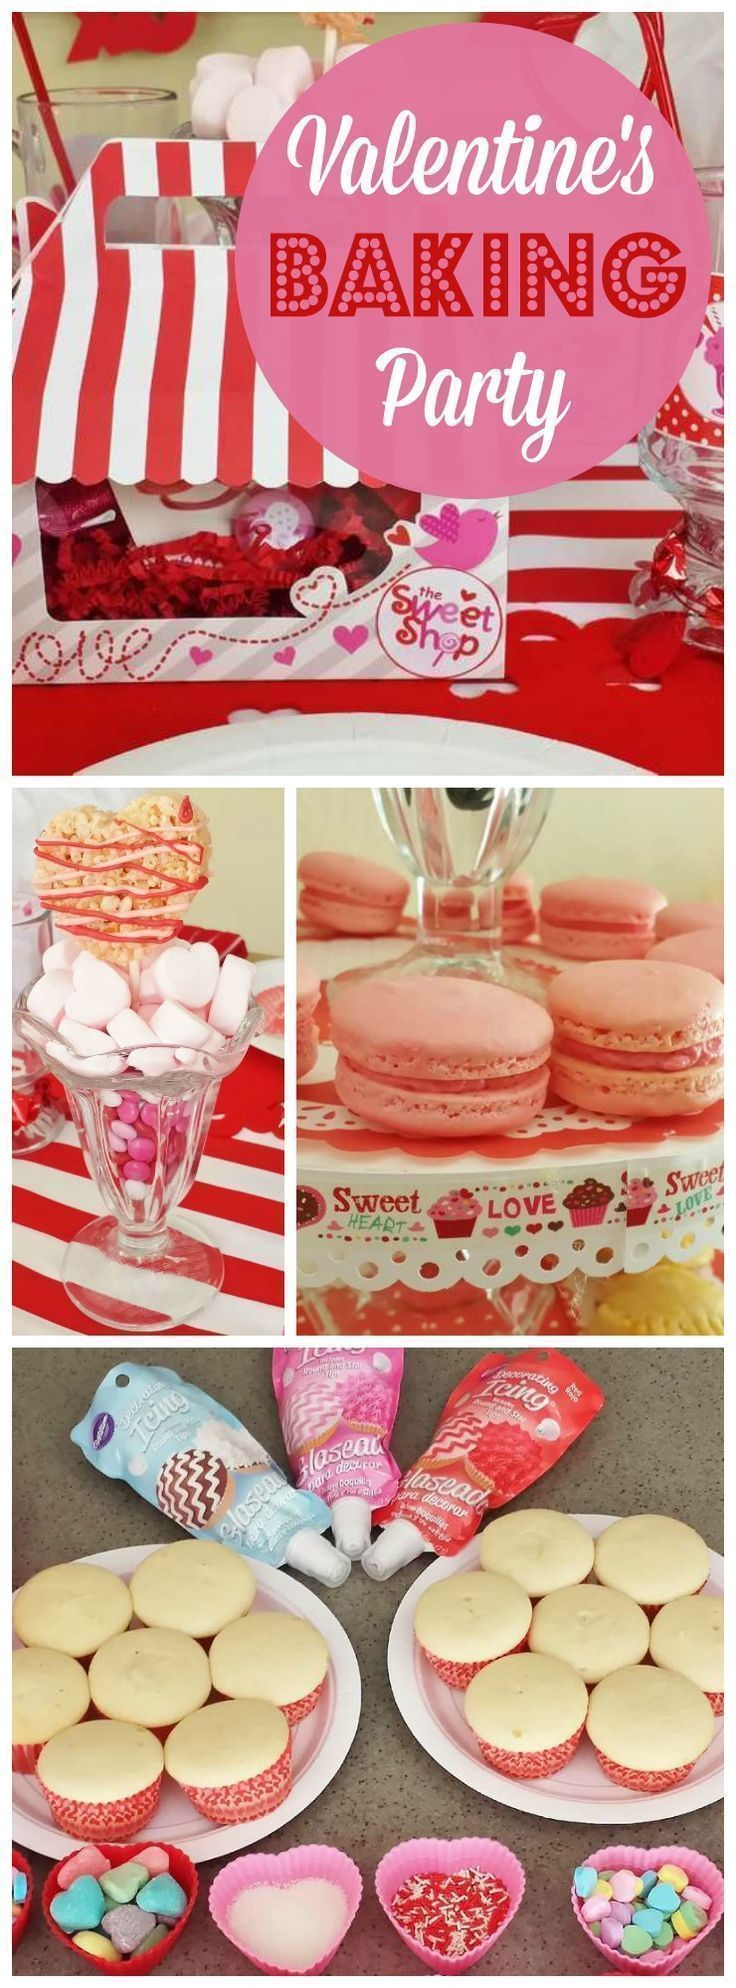 Diese Backparty dreht sich alles um den Valentinstag! Weitere Partyideen ... ,  #Alles #Backparty #den #Diese #dreht #Alles #Backparty #den #Diese #dreht #Partyideen #sich #valentines day cards #valentines day decorations #valentines day fondos #valentines day food #valentines day for her #valentines day for him #valentines day gifts #valentines day ideas #valentines day photography #Valentinstag #Weitere